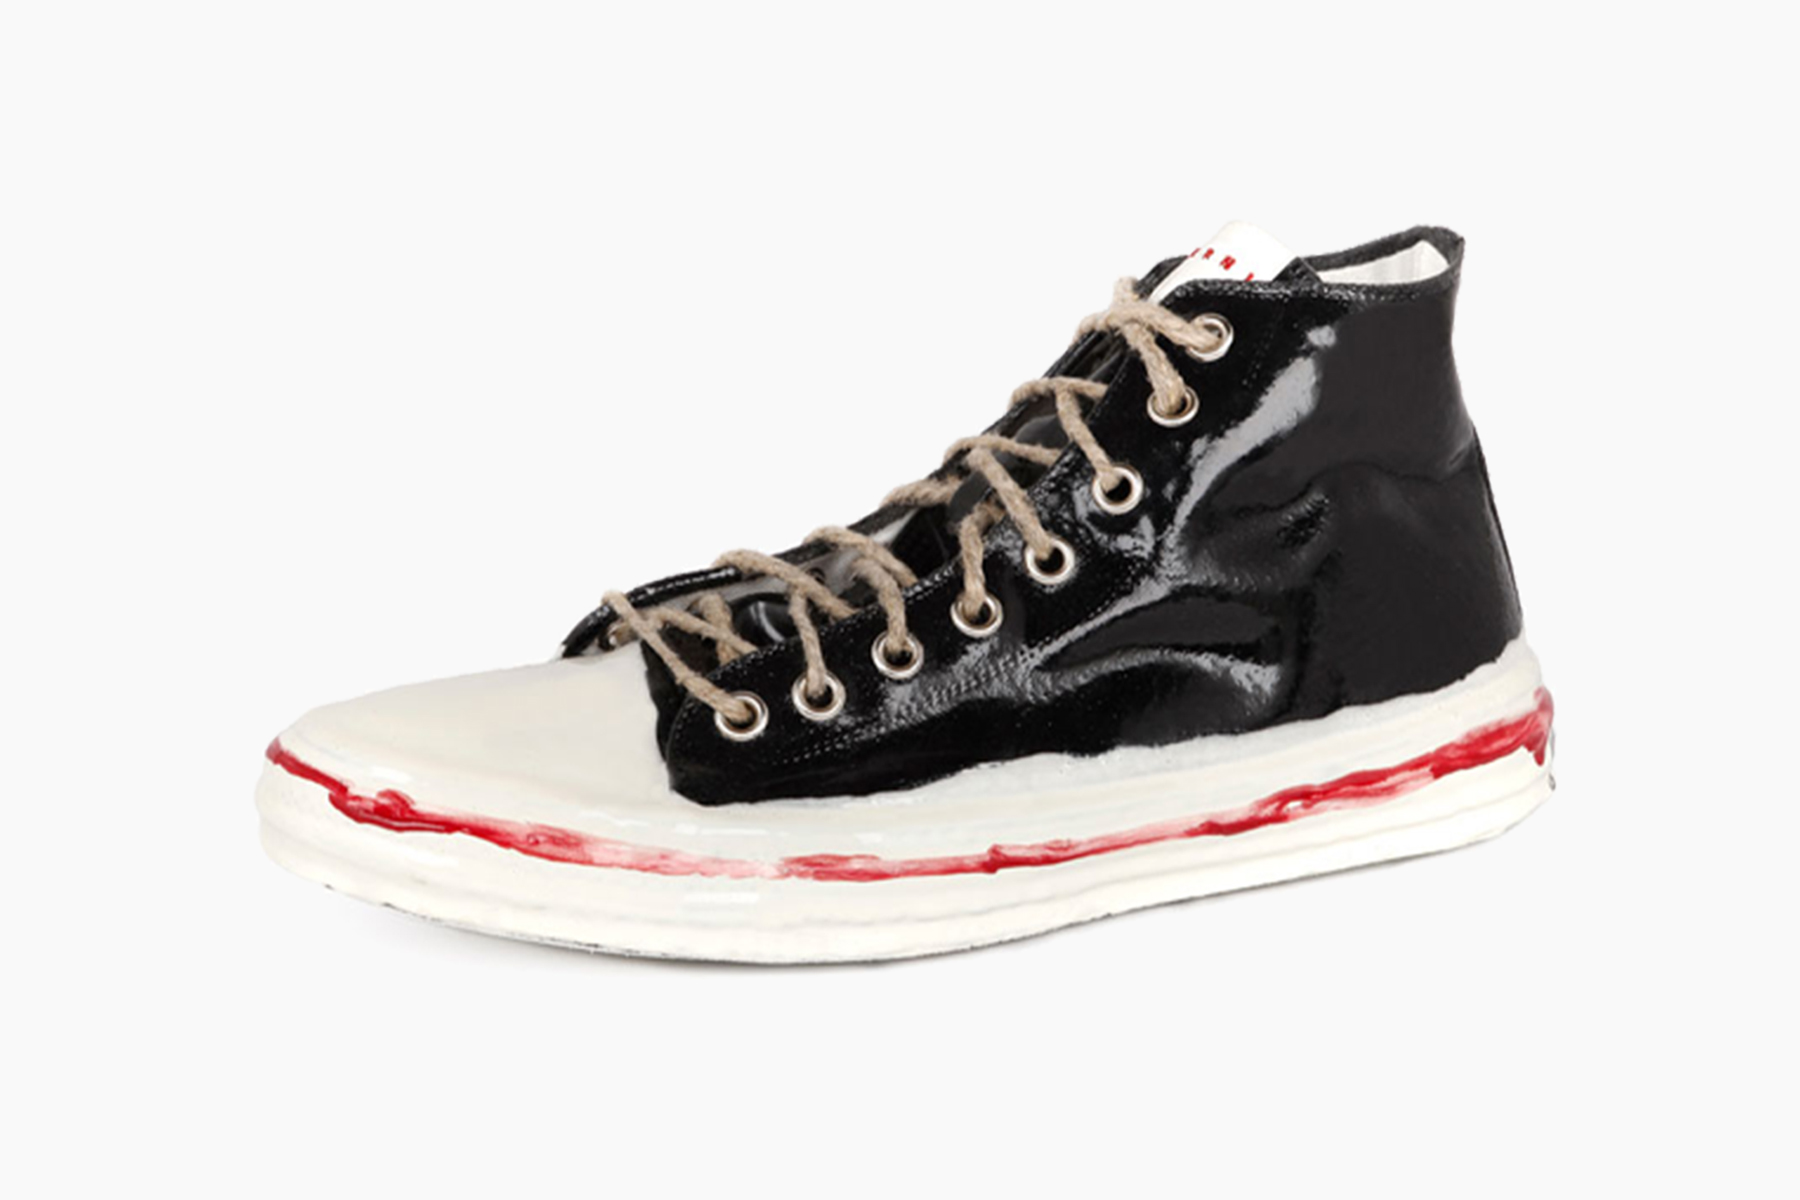 Marni Black & White Painted Low-Top Sneakers